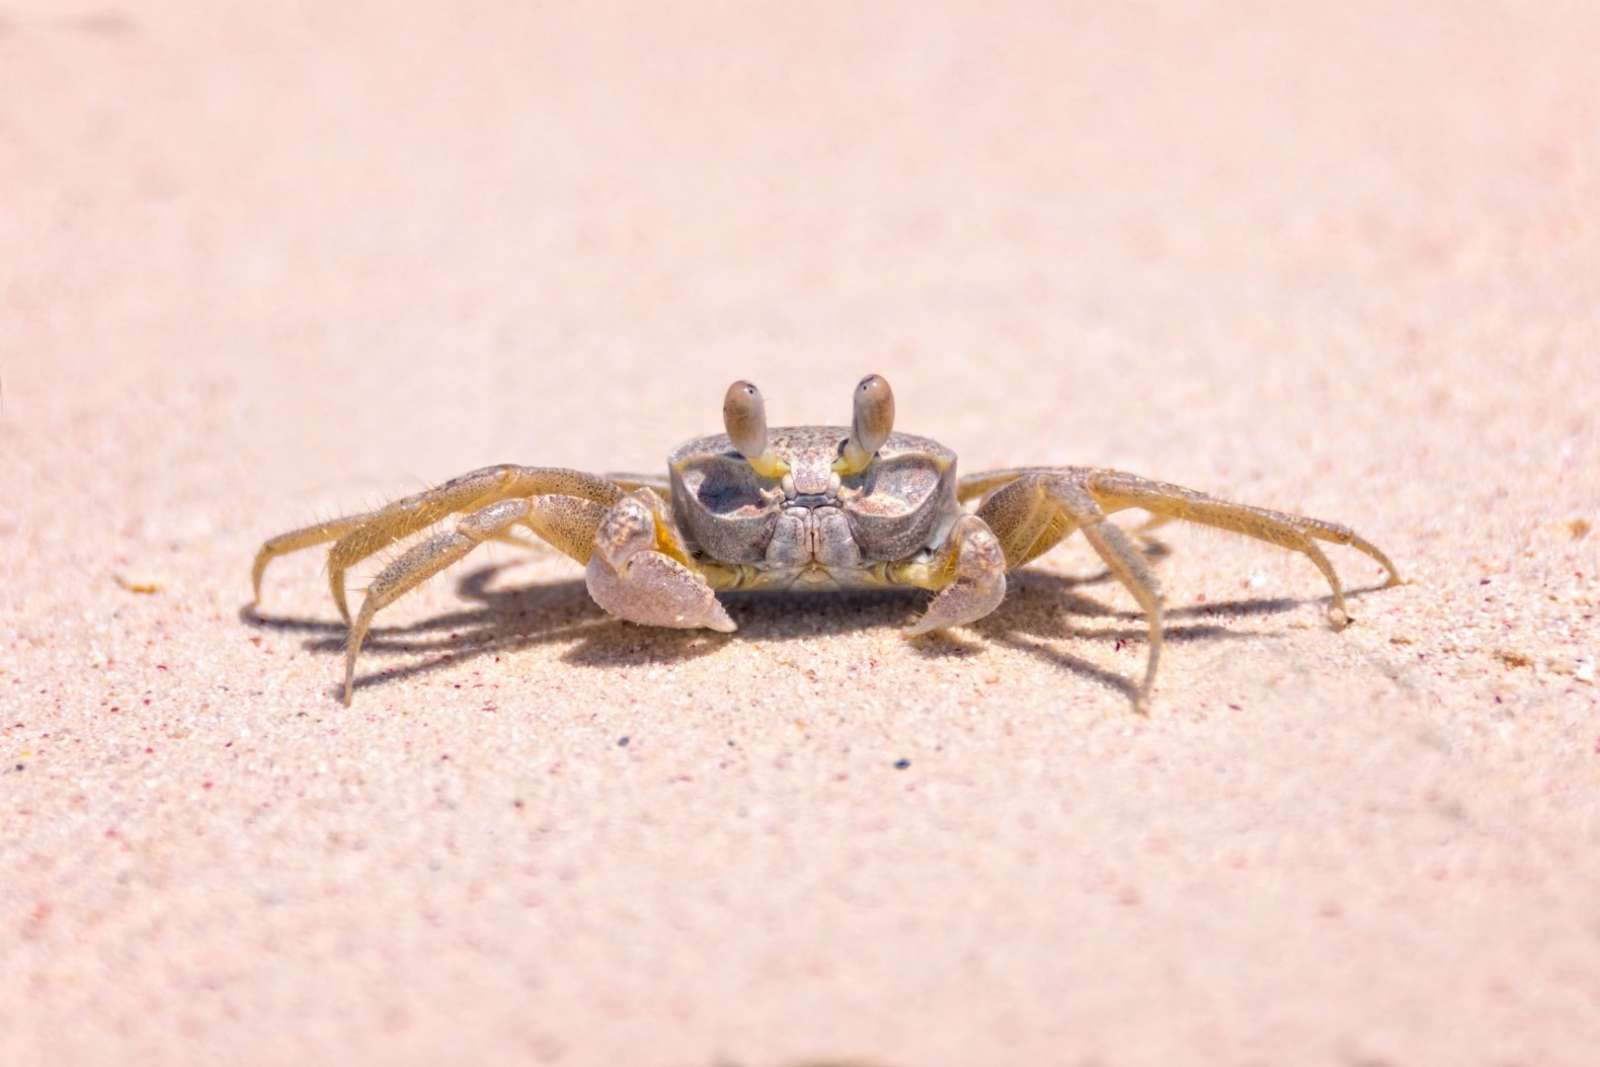 Crab on the beach at Cayo Levisa, Cuba